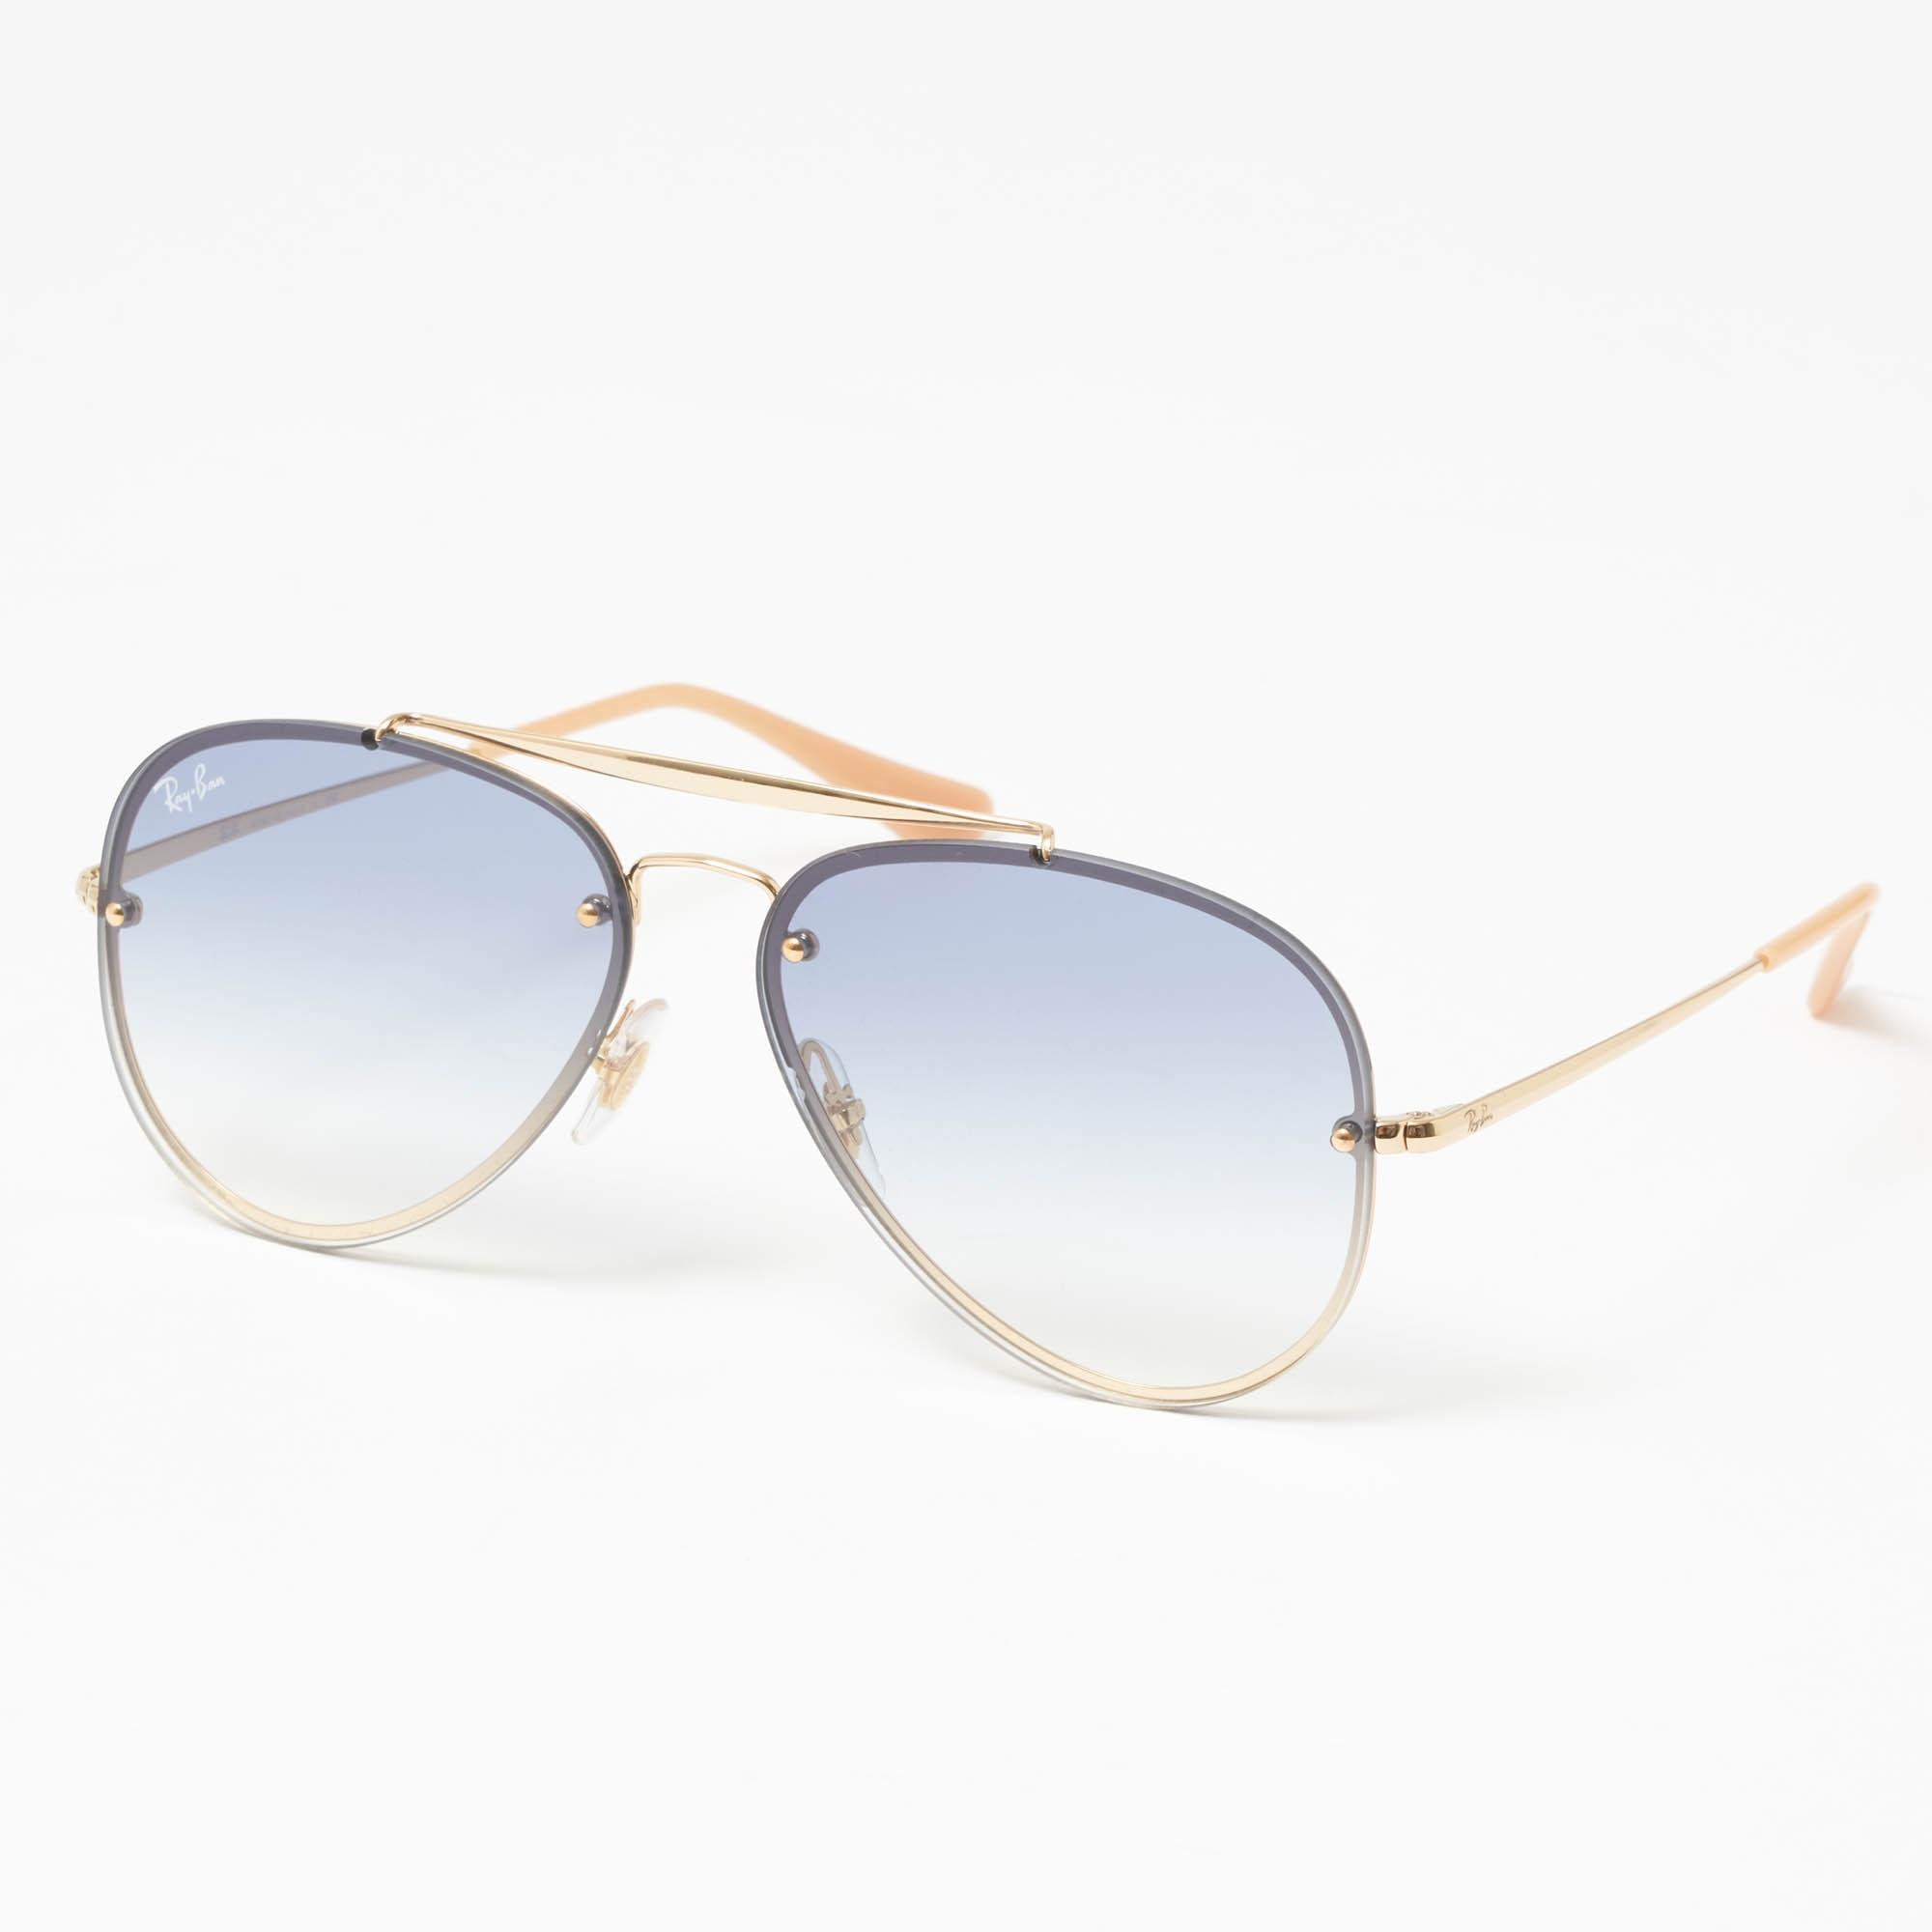 f13a4872c3a Ray-Ban Gold Blaze Aviator Sunglasses - Light Blue Gradient Lenses ...